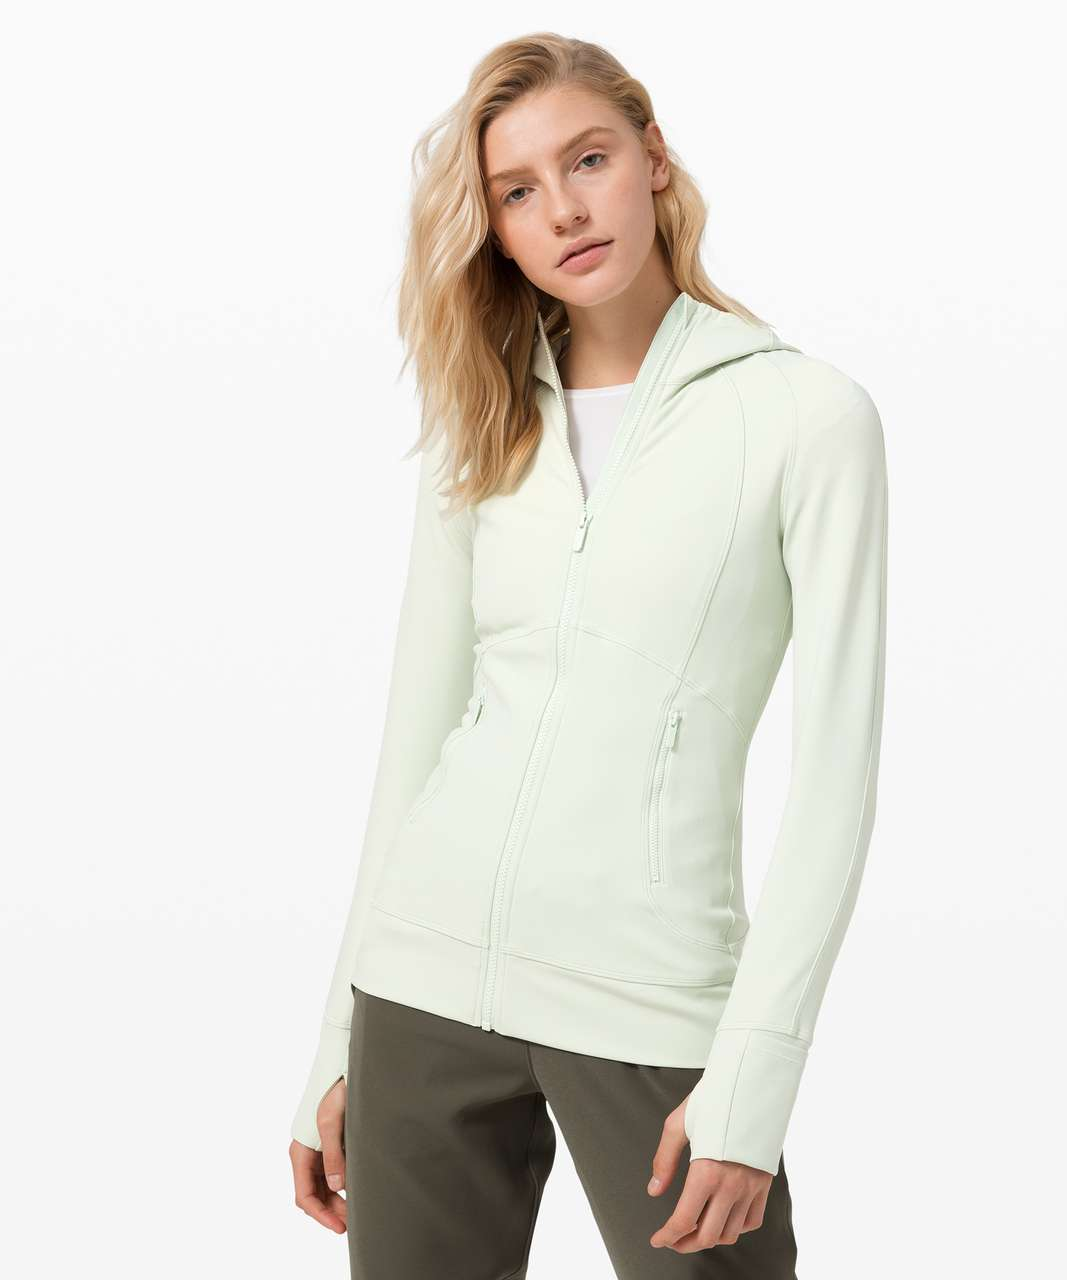 Lululemon Day Maker Full Zip Hoodie - Springtime